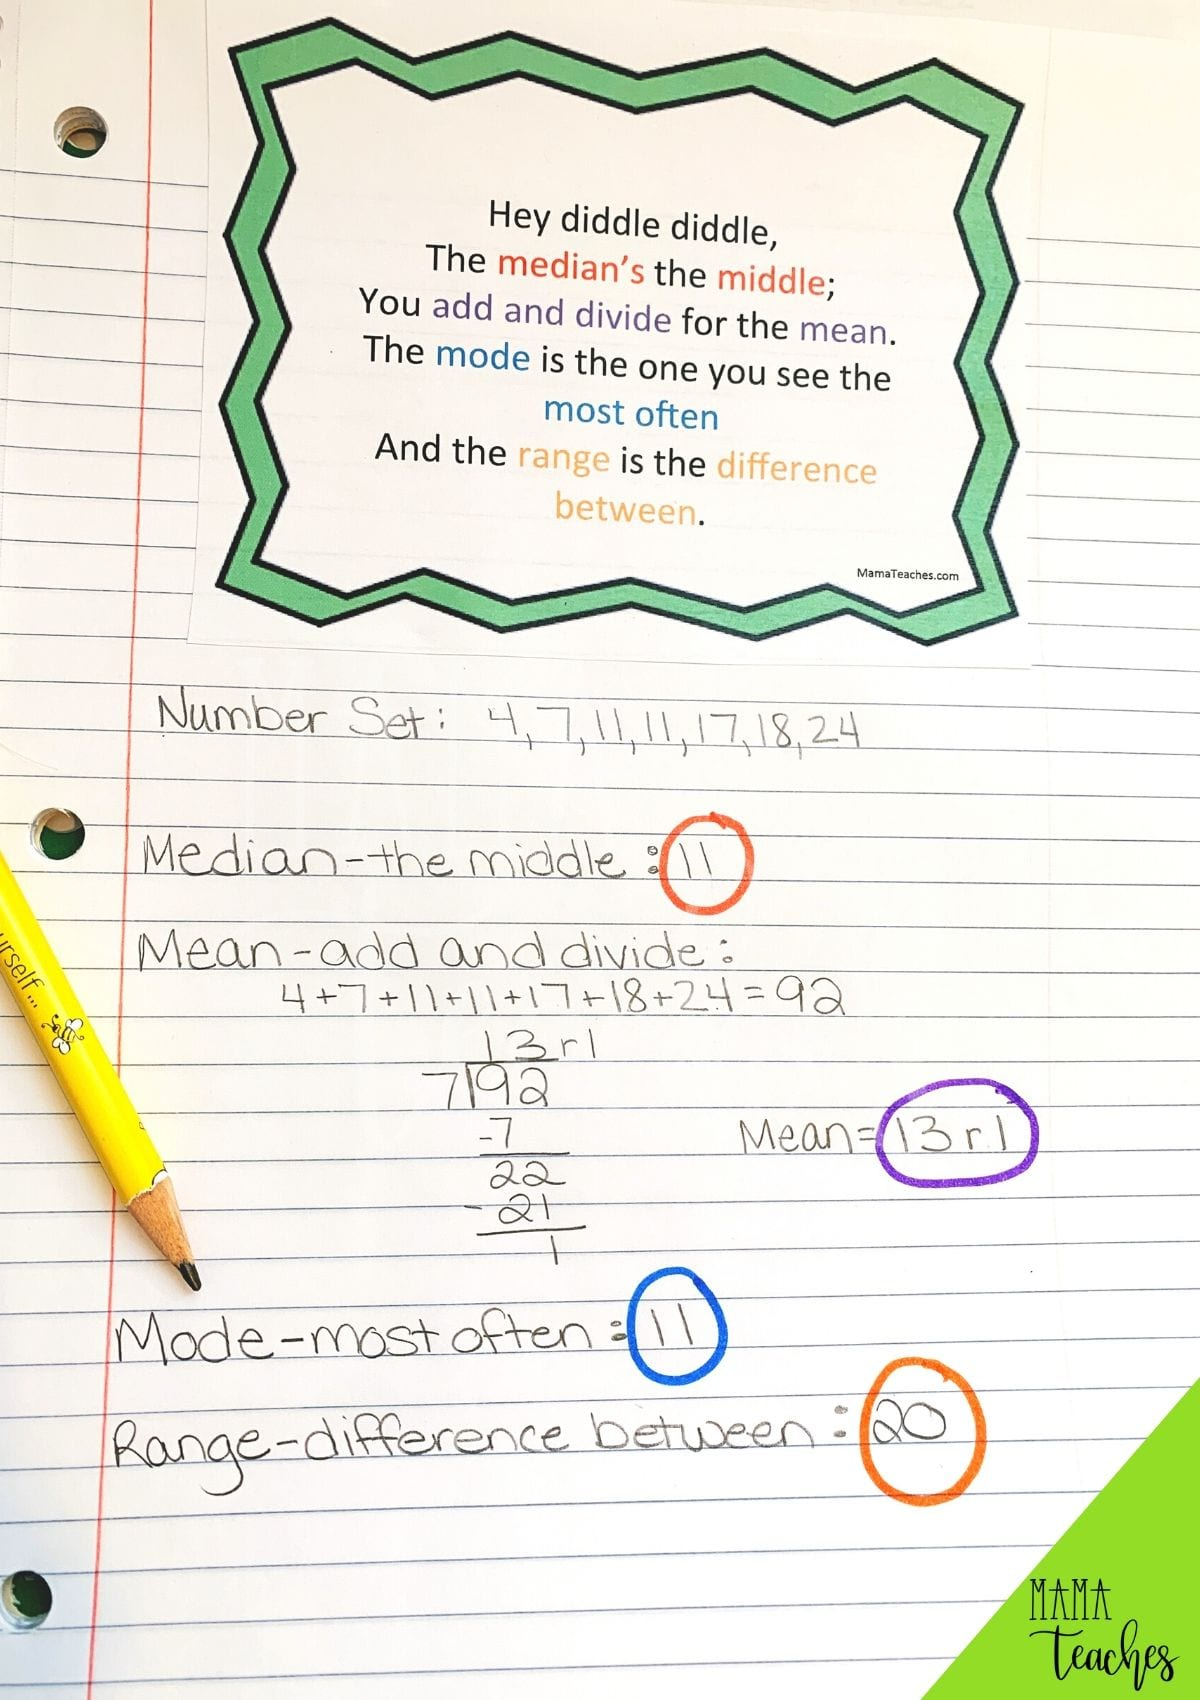 Mean Median Mode and Range Rhyme - Printable Math Anchor Chart for Math Notebooks from MamaTeaches